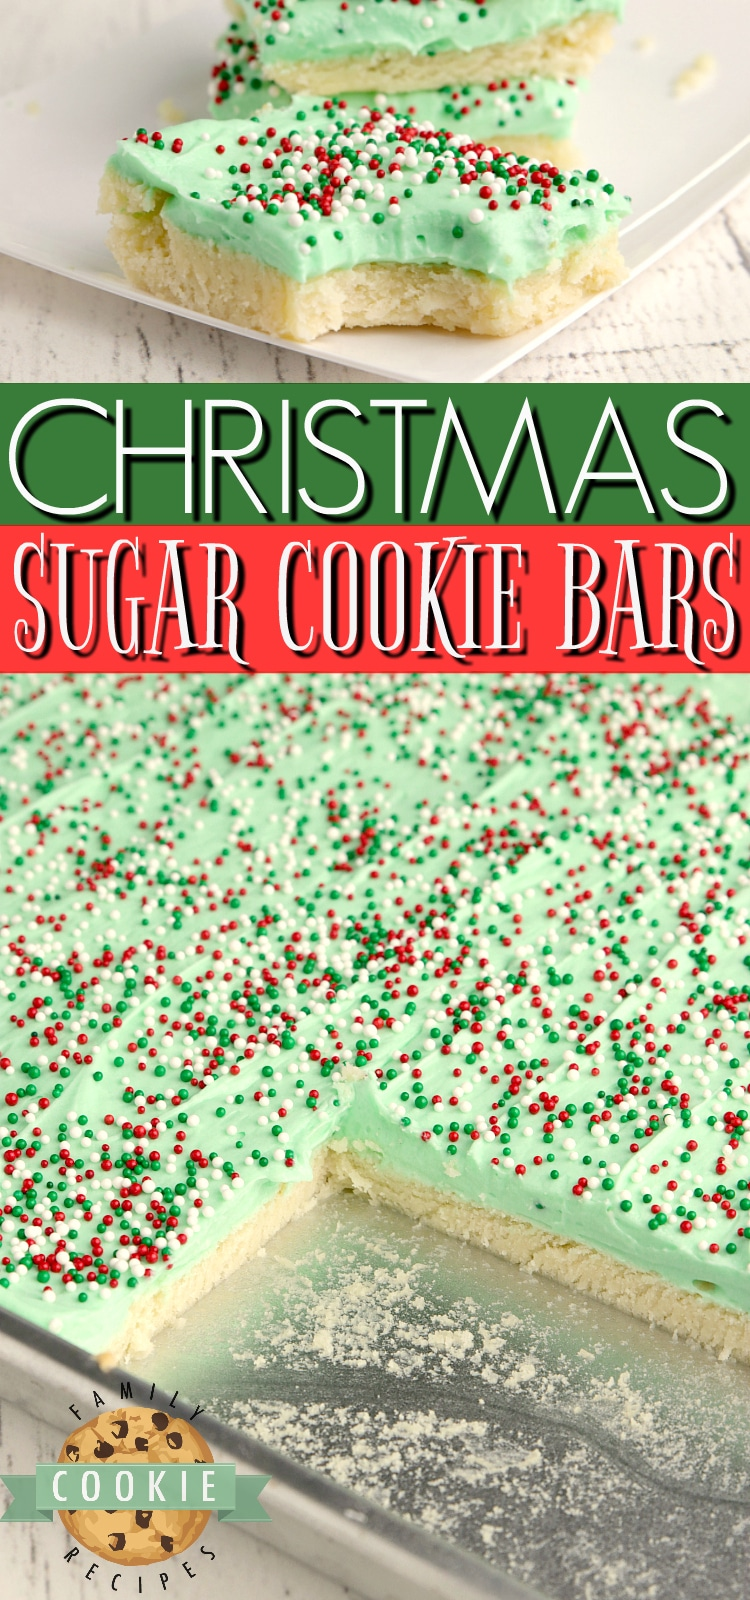 Christmas Sugar Cookie Bars are thick, soft and absolutely amazing! Best sugar cookie bar recipe that I've ever tried!